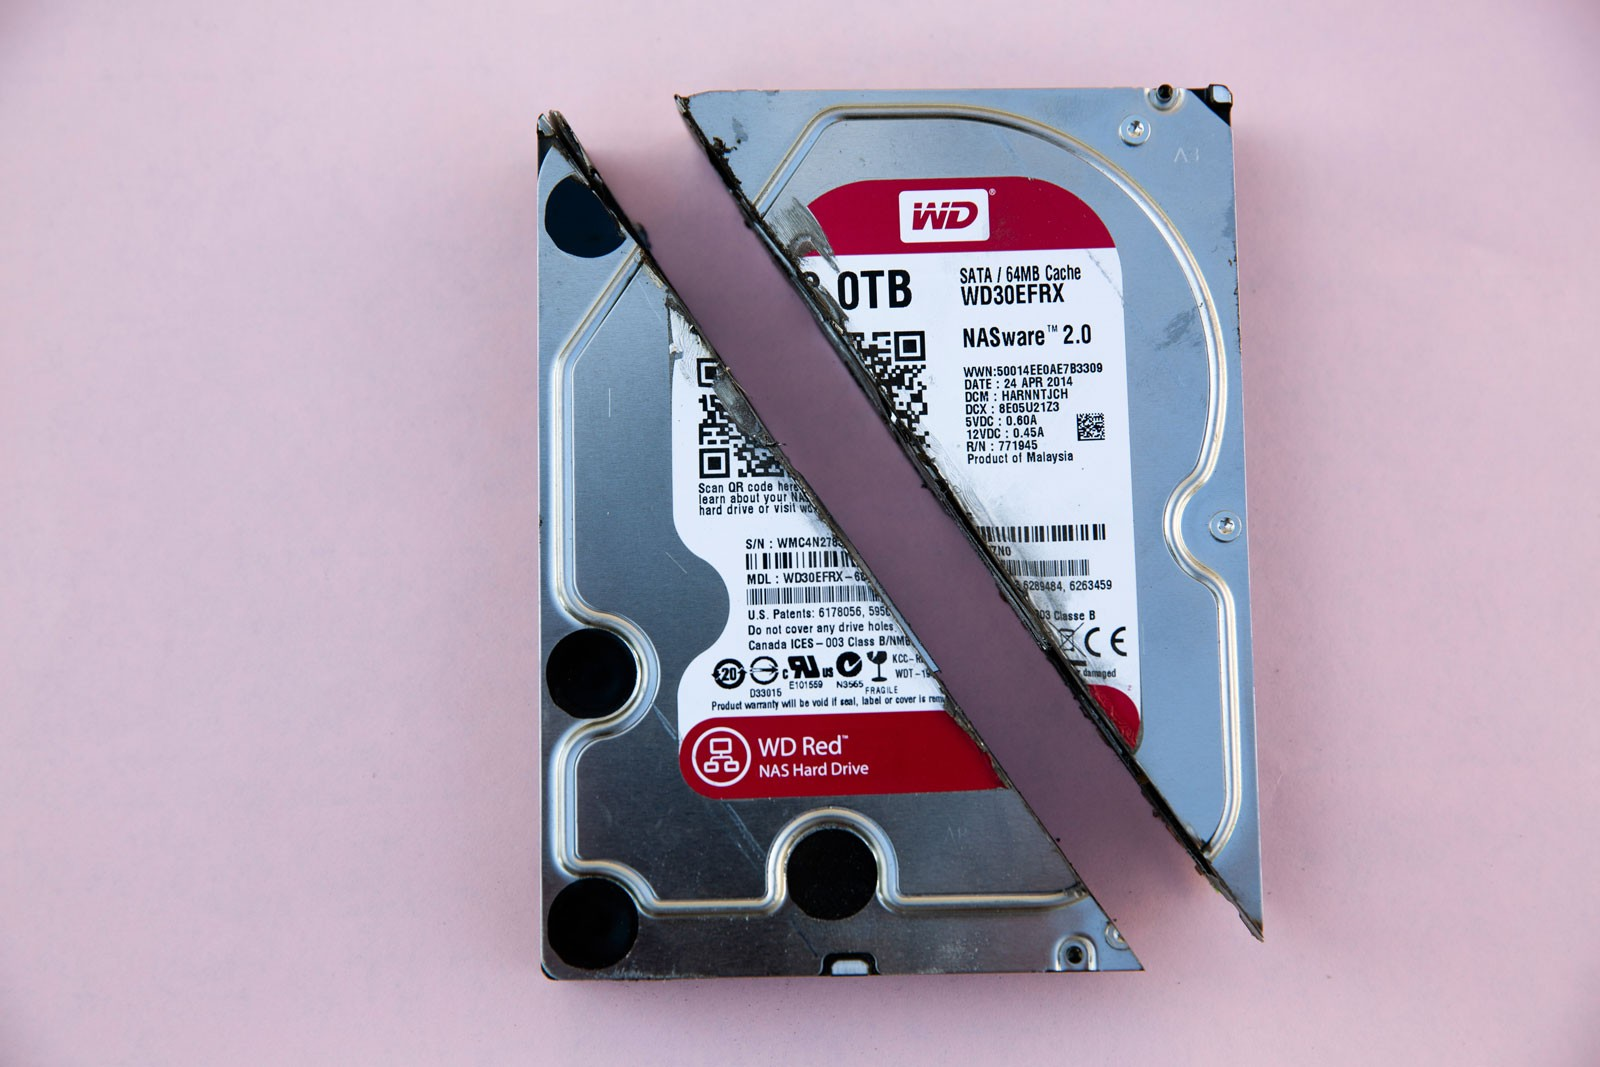 Consumer or Enterprise SSD storage? What is the difference